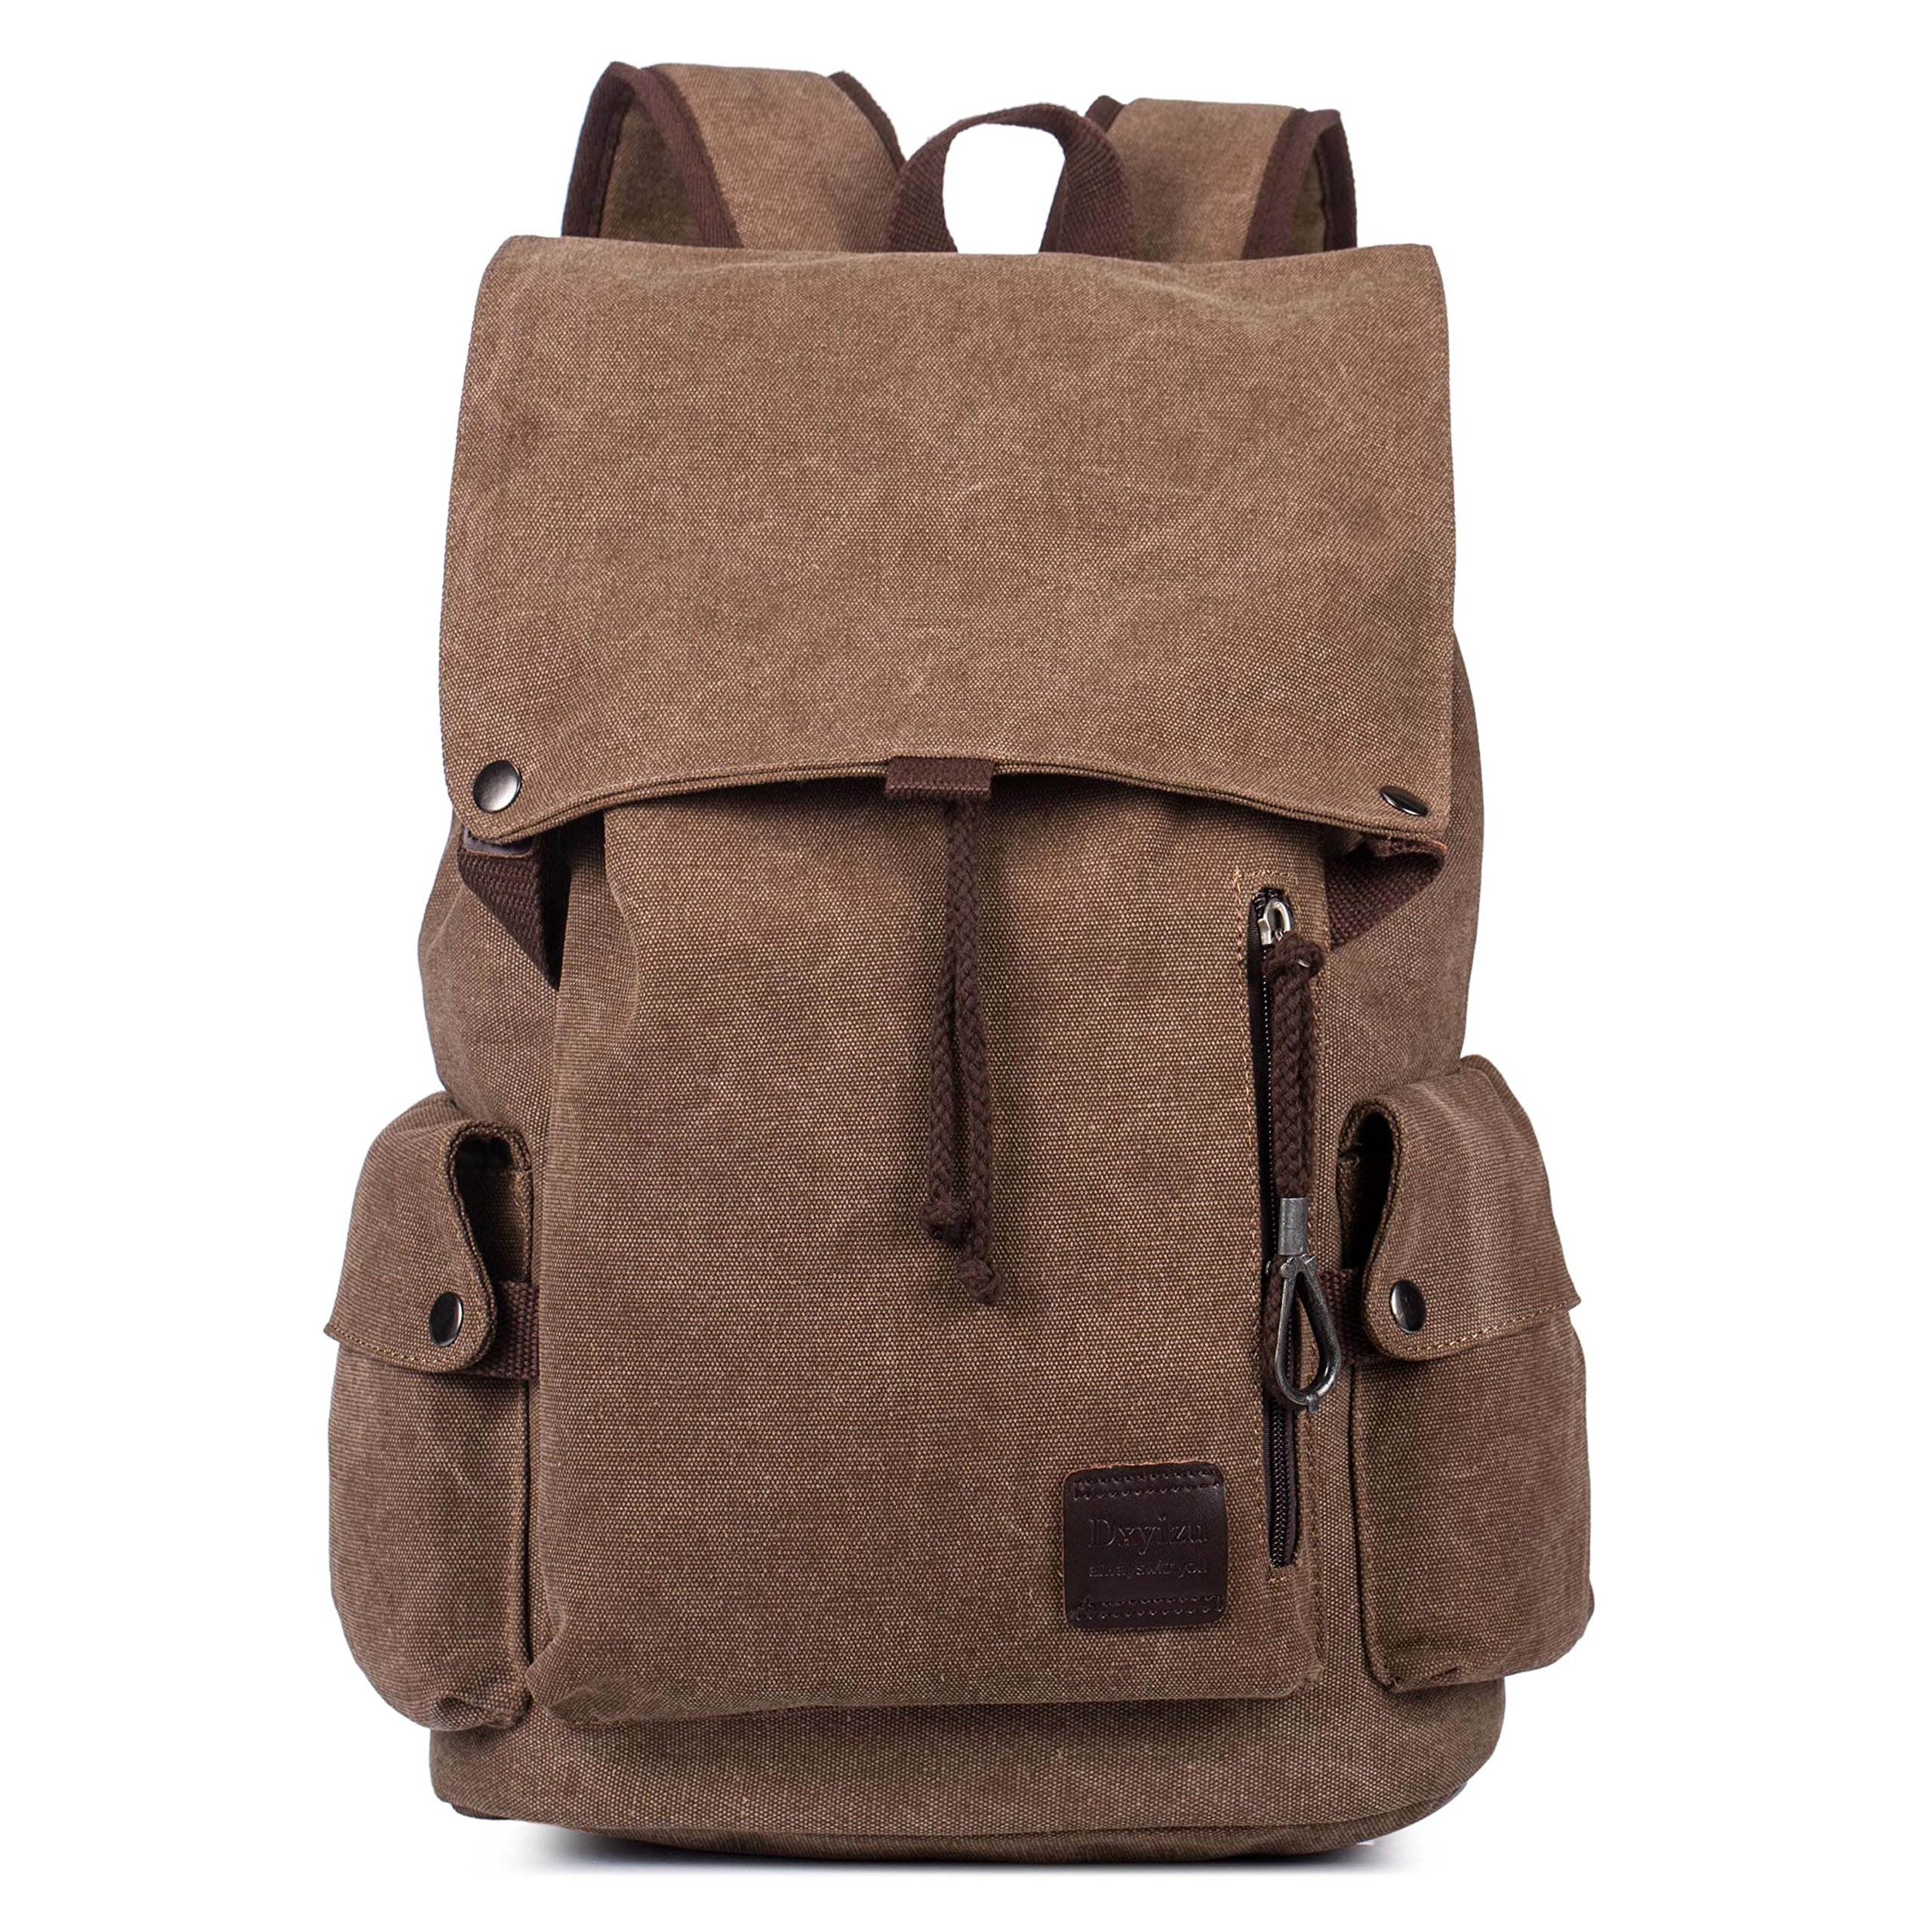 Canvas Rucksack School Backpack for 15.6 Inch Laptop Large Capacity Student Bookbag Casual Travel Bag for Men Women Brown